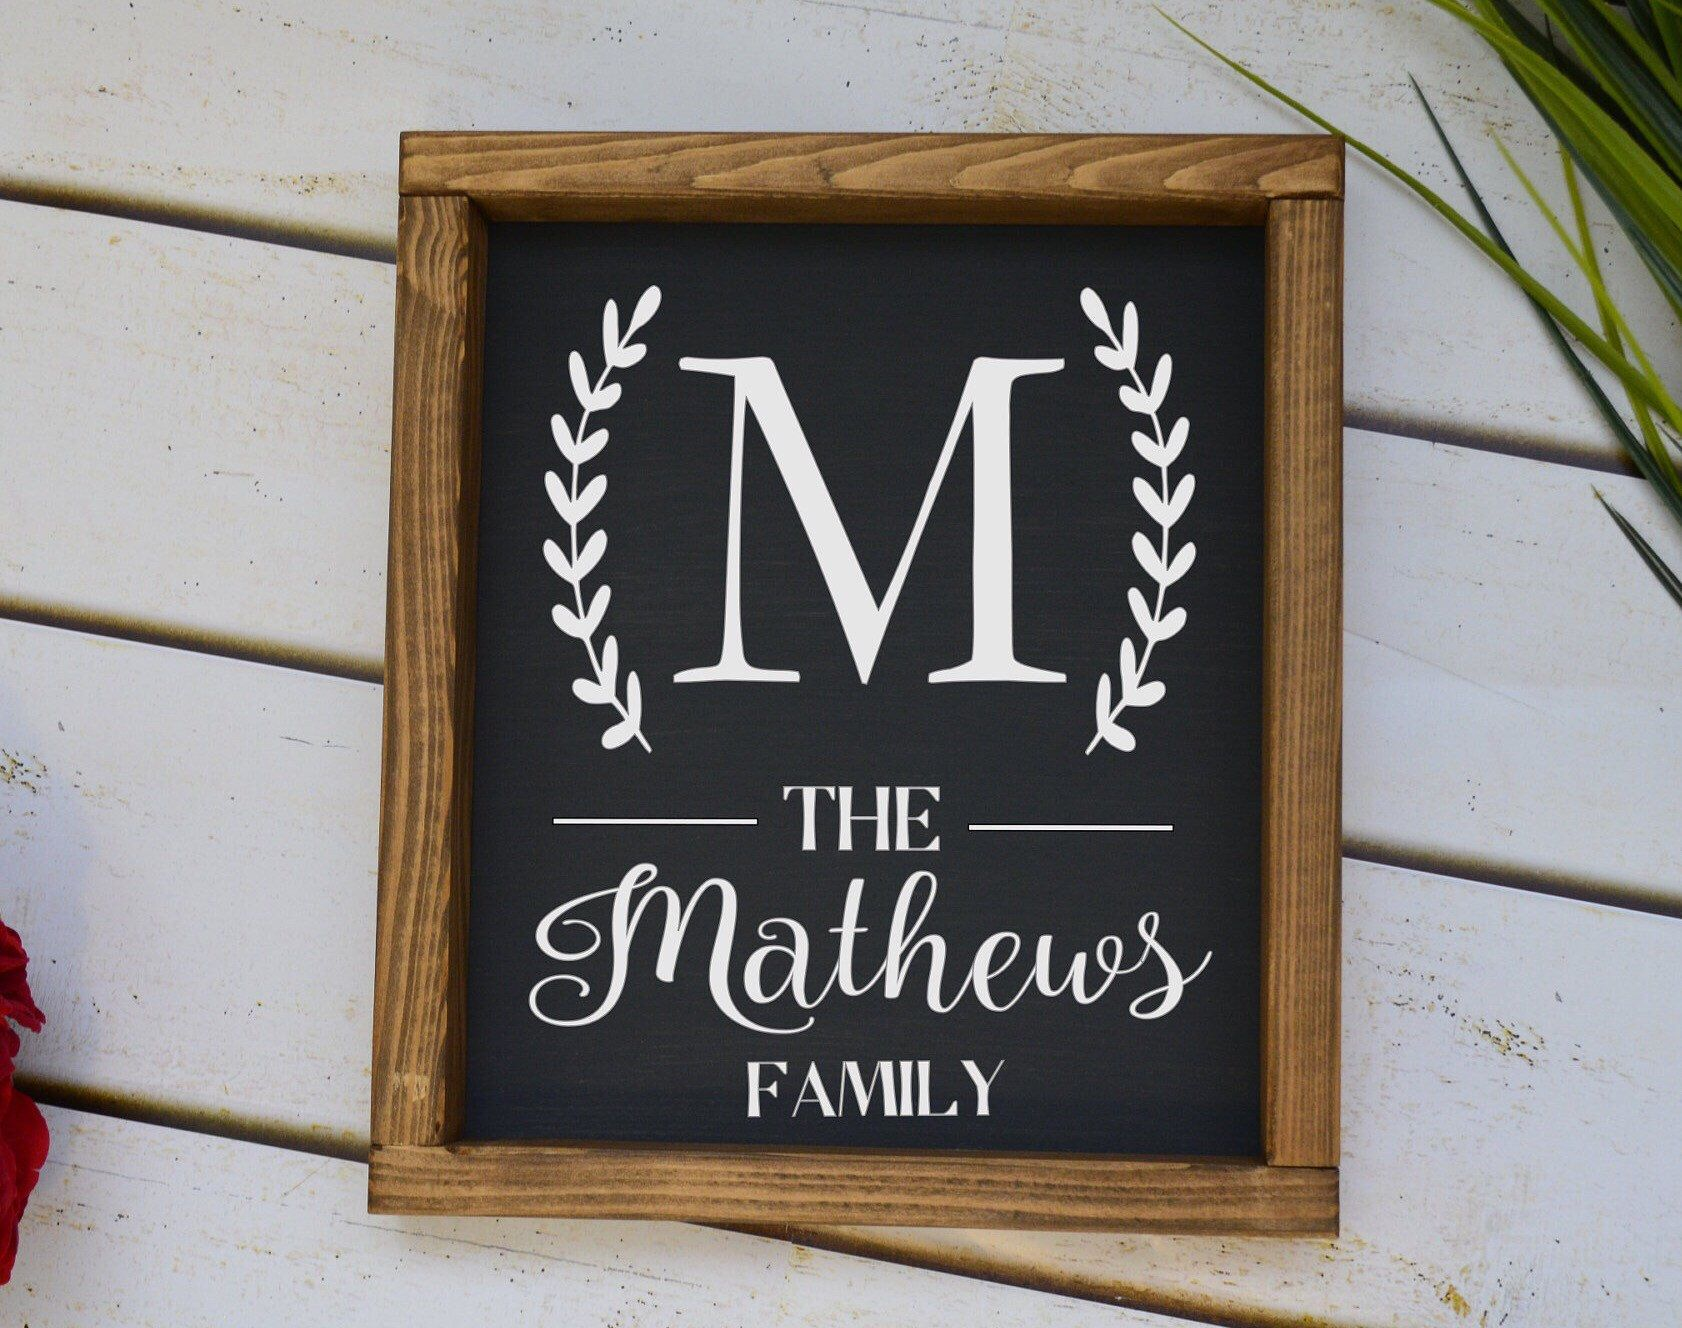 Last Name Sign Monogram Personalized Wood Sign Wedding Etsy Wood Signs Wedding Gift Personalized Wood Signs Family Wood Signs